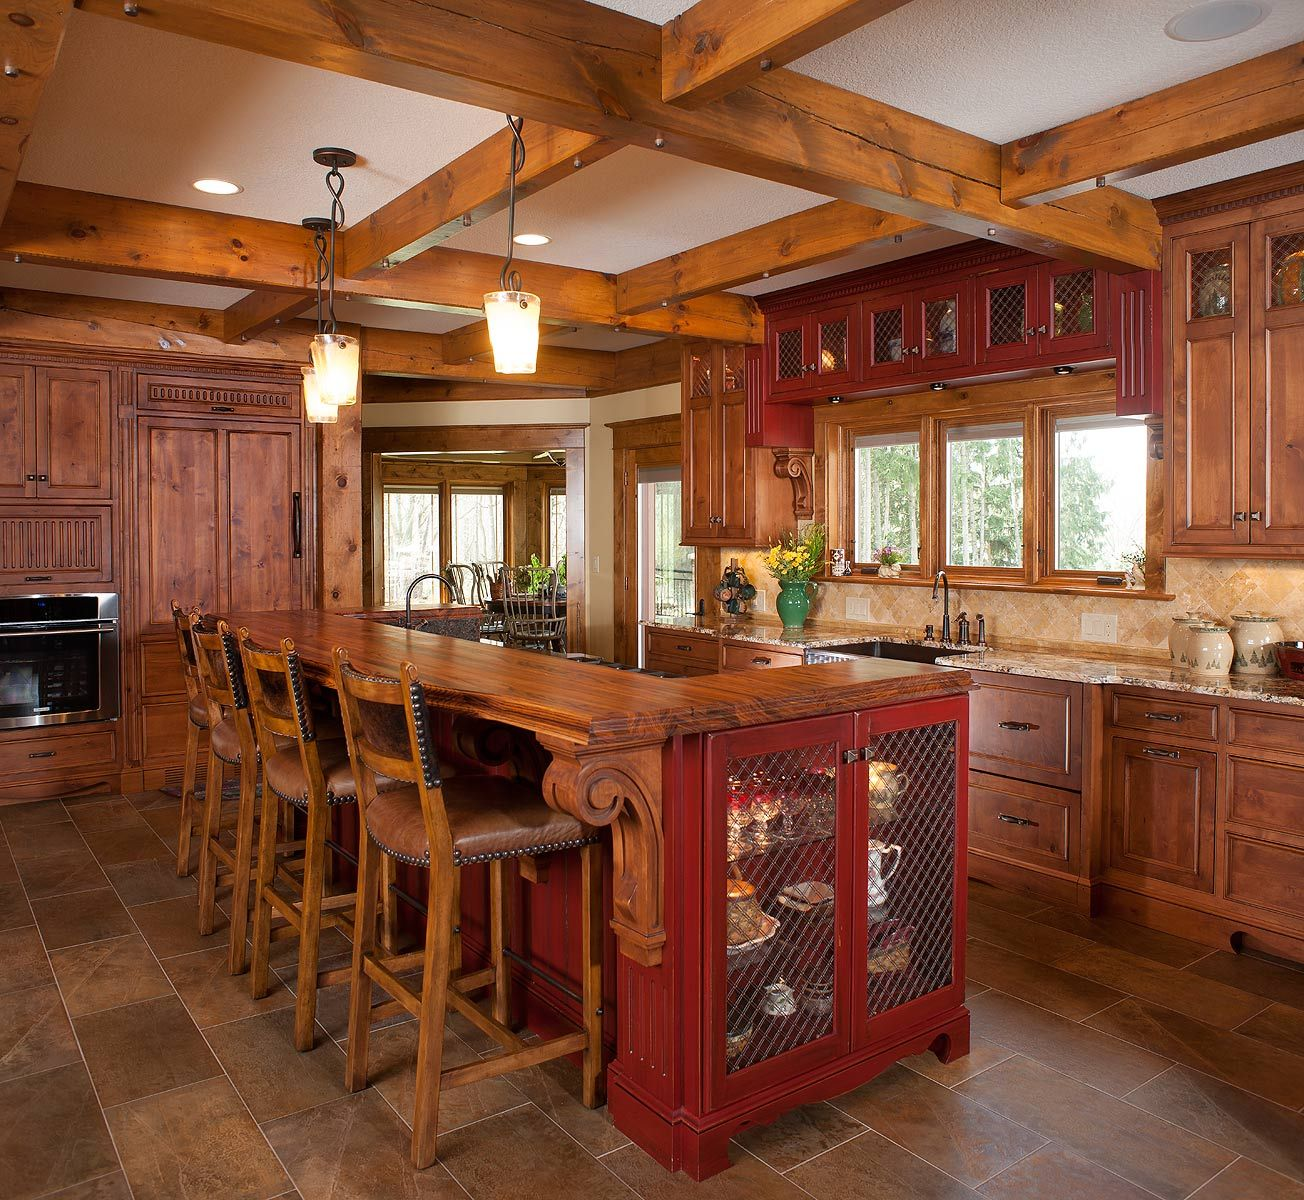 10 Amazing Rustic Kitchen Decor Ideas: 15 Interesting Rustic Kitchen Designs